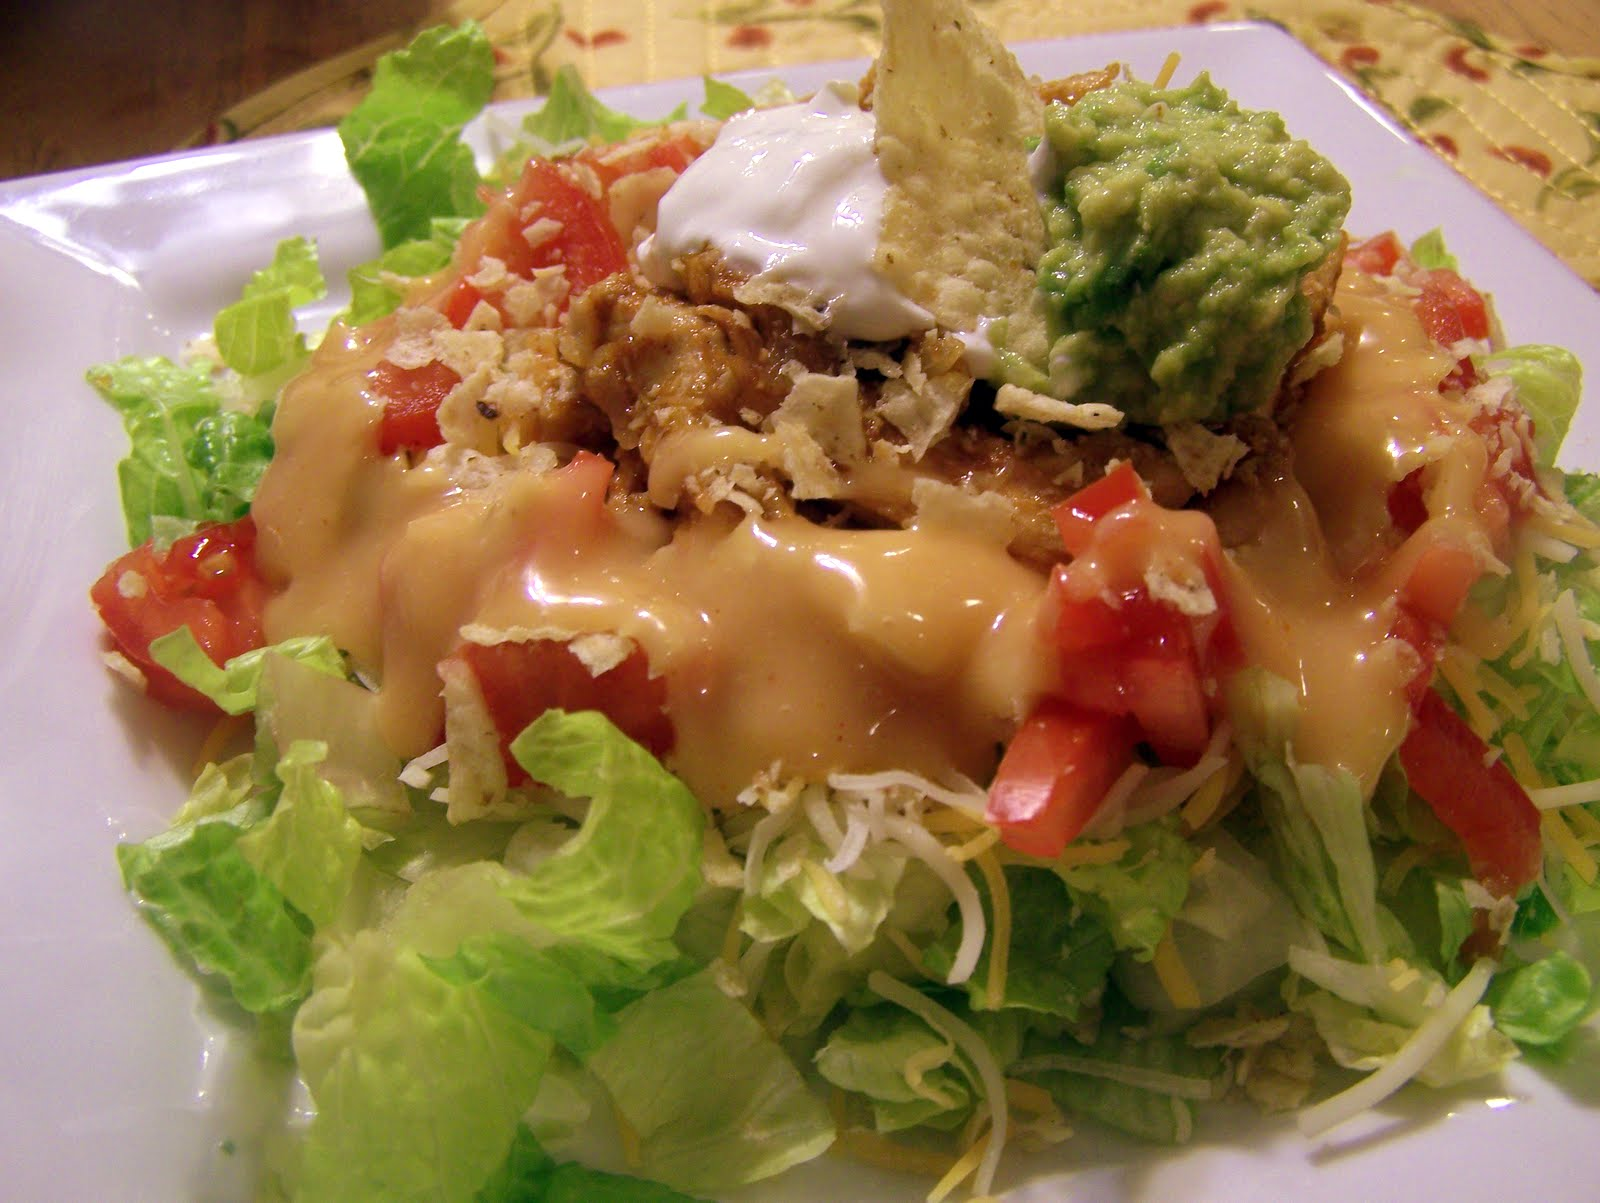 ... taco salad but not really for the traditional beef taco salad so today